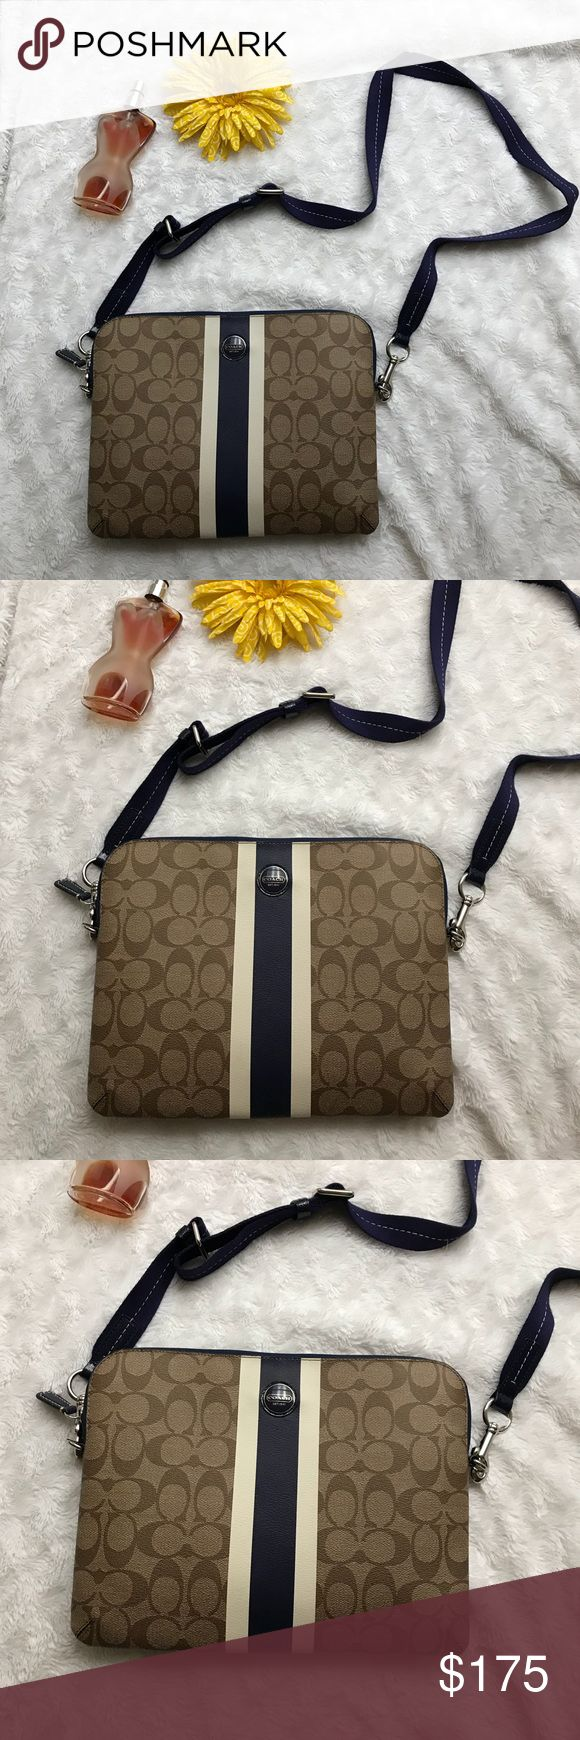 """NEW Coach Purse 🌿🌻 BRAND NEW✨✨//Includes Care Instructions//Long Adjustable Strap//approx. 8""""X11""""//Offers accepted or countered✨// Coach Bags"""